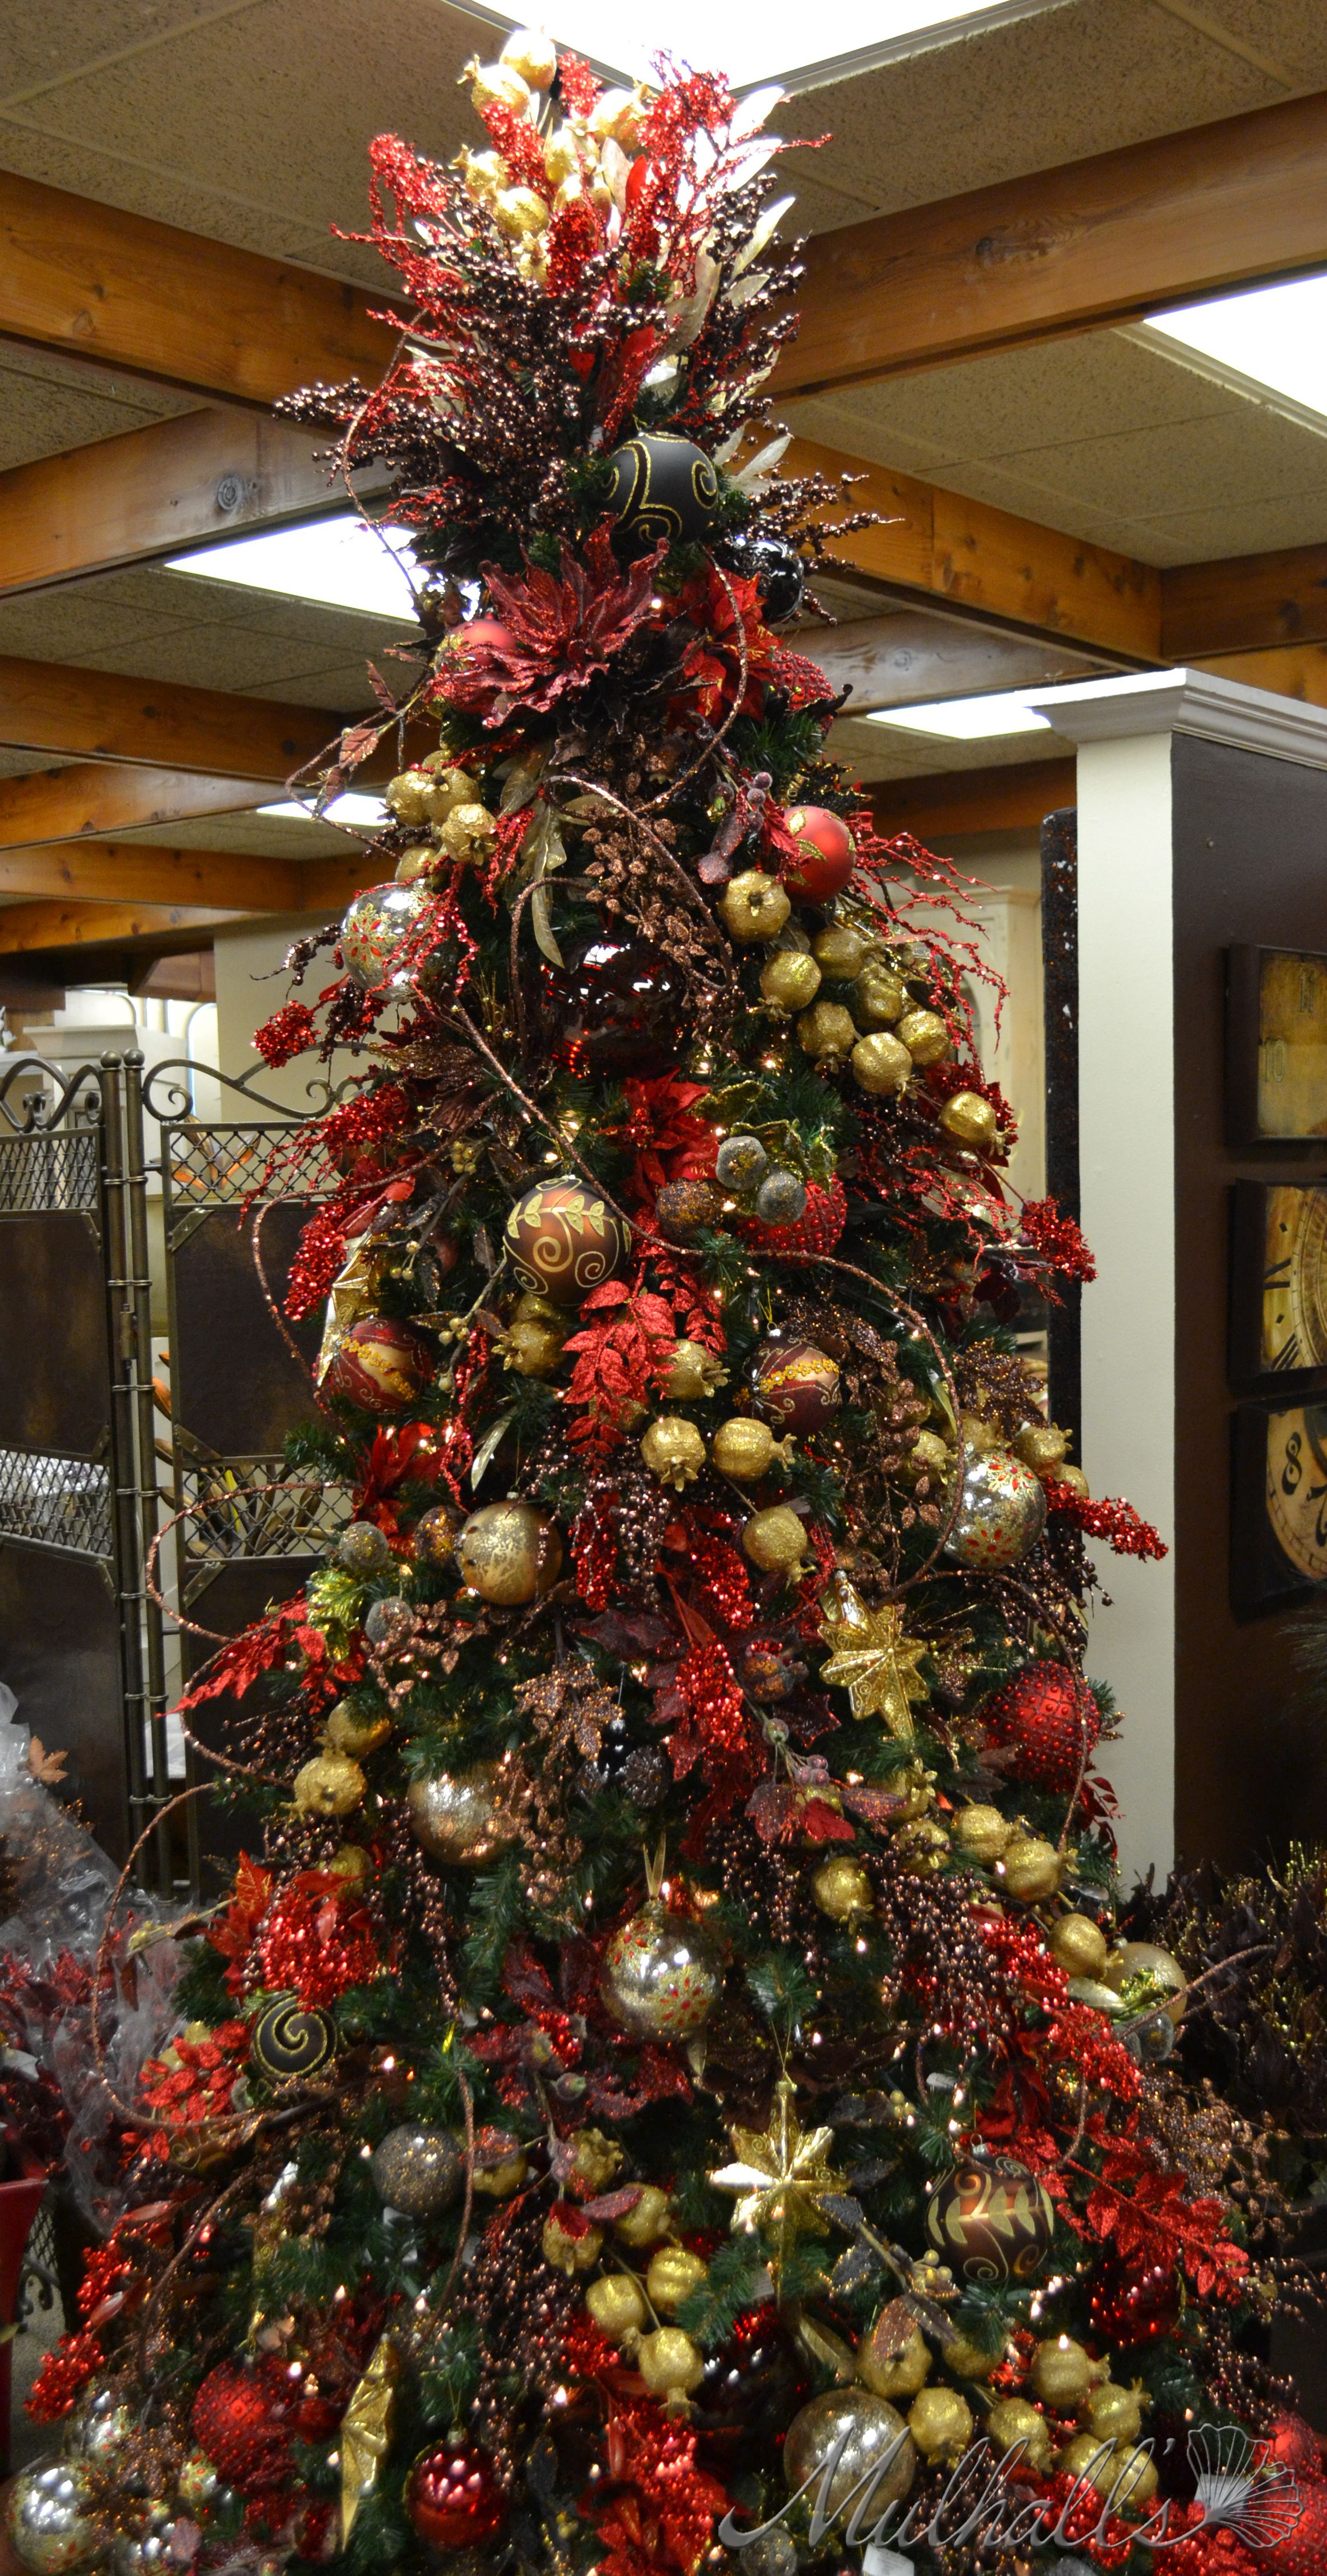 Christmas tree decorations red and green - Red Chocolate Themed Christmas Tree Not Sure I Am In Love With The Red And Chocolate Color Scheme But It Is A Lovely Site On Its Own Merit